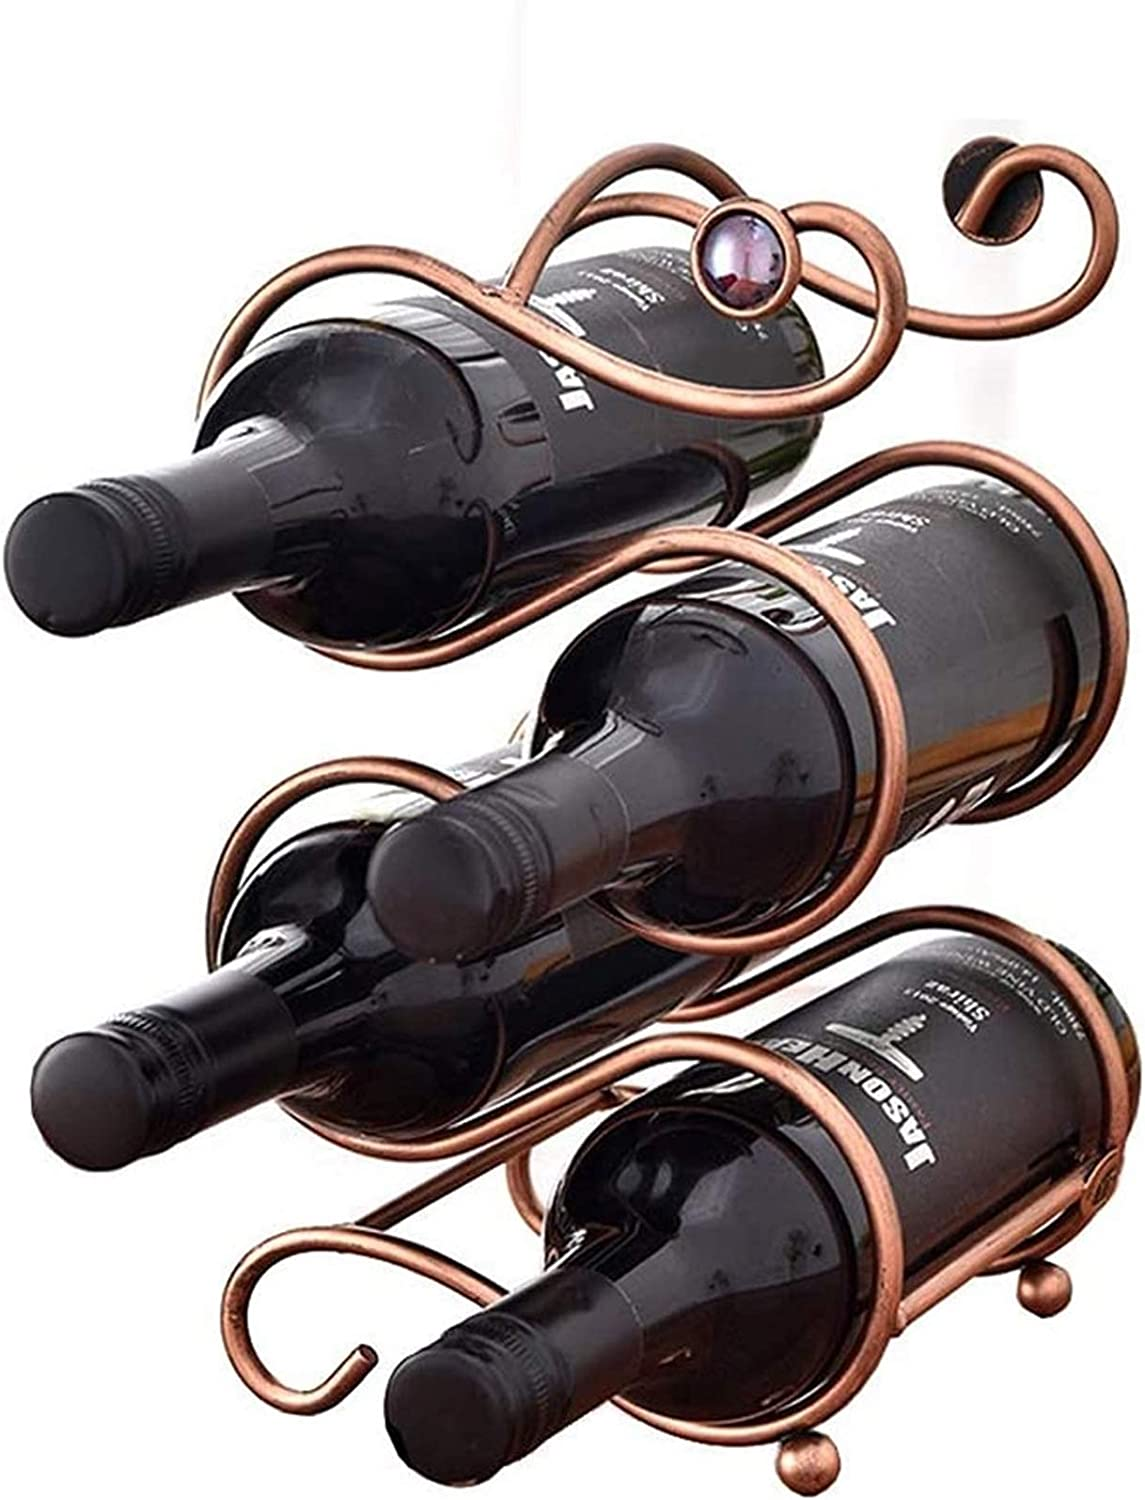 DSWHM Free Standing Countertop Wine Retro Rack W Now free shipping Style Challenge the lowest price of Japan ☆ European